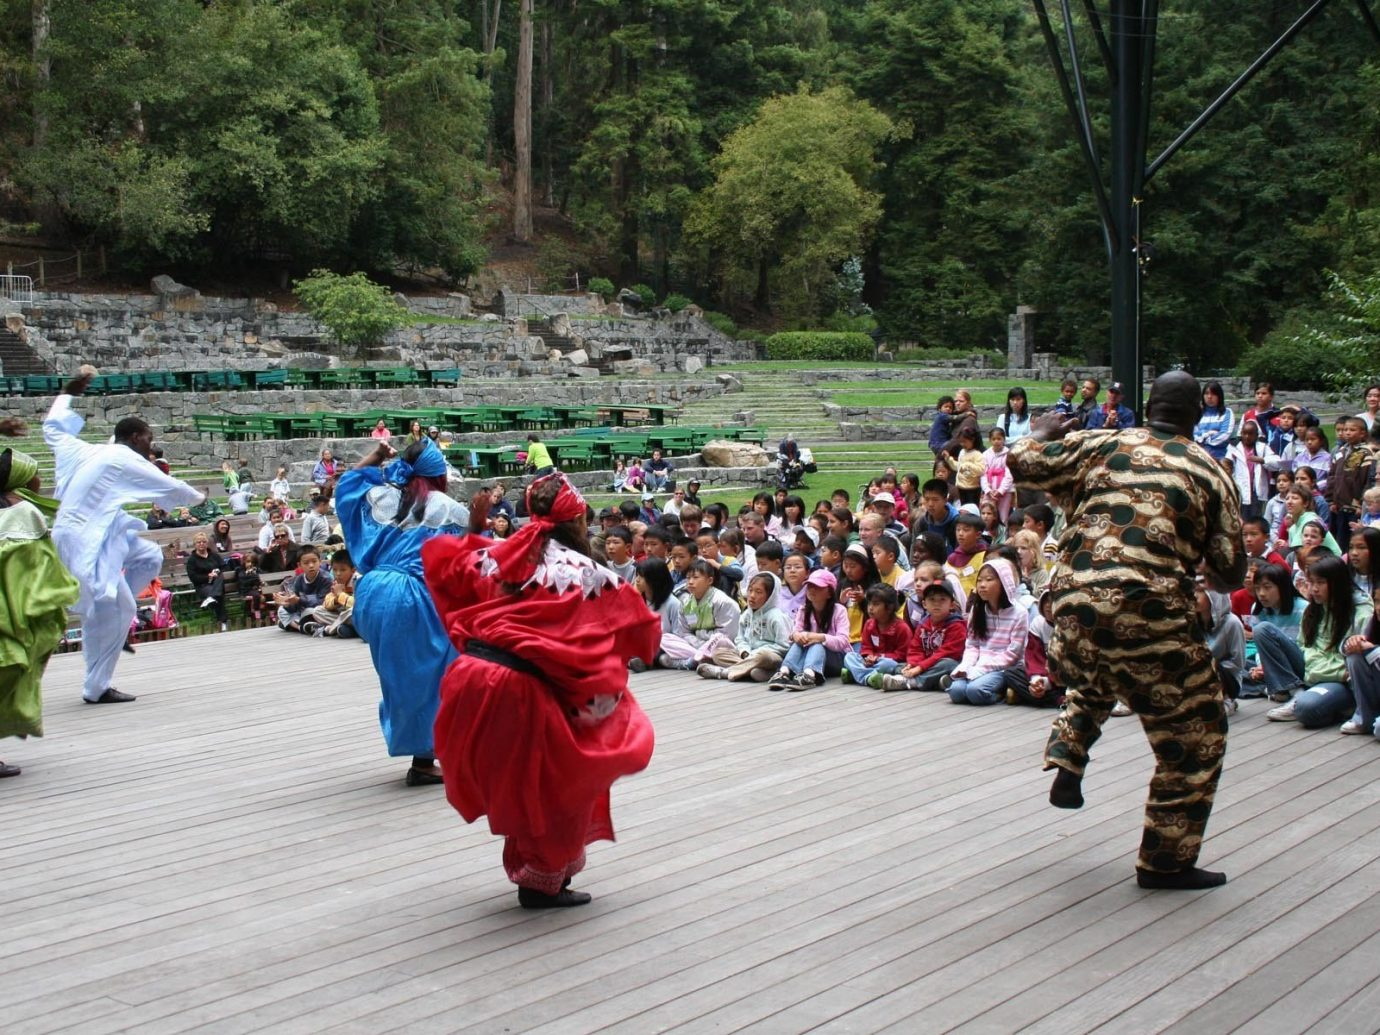 Offbeat tree outdoor person dancer Sport people performing arts plant event recreation tradition group folk dance festival fête crowd